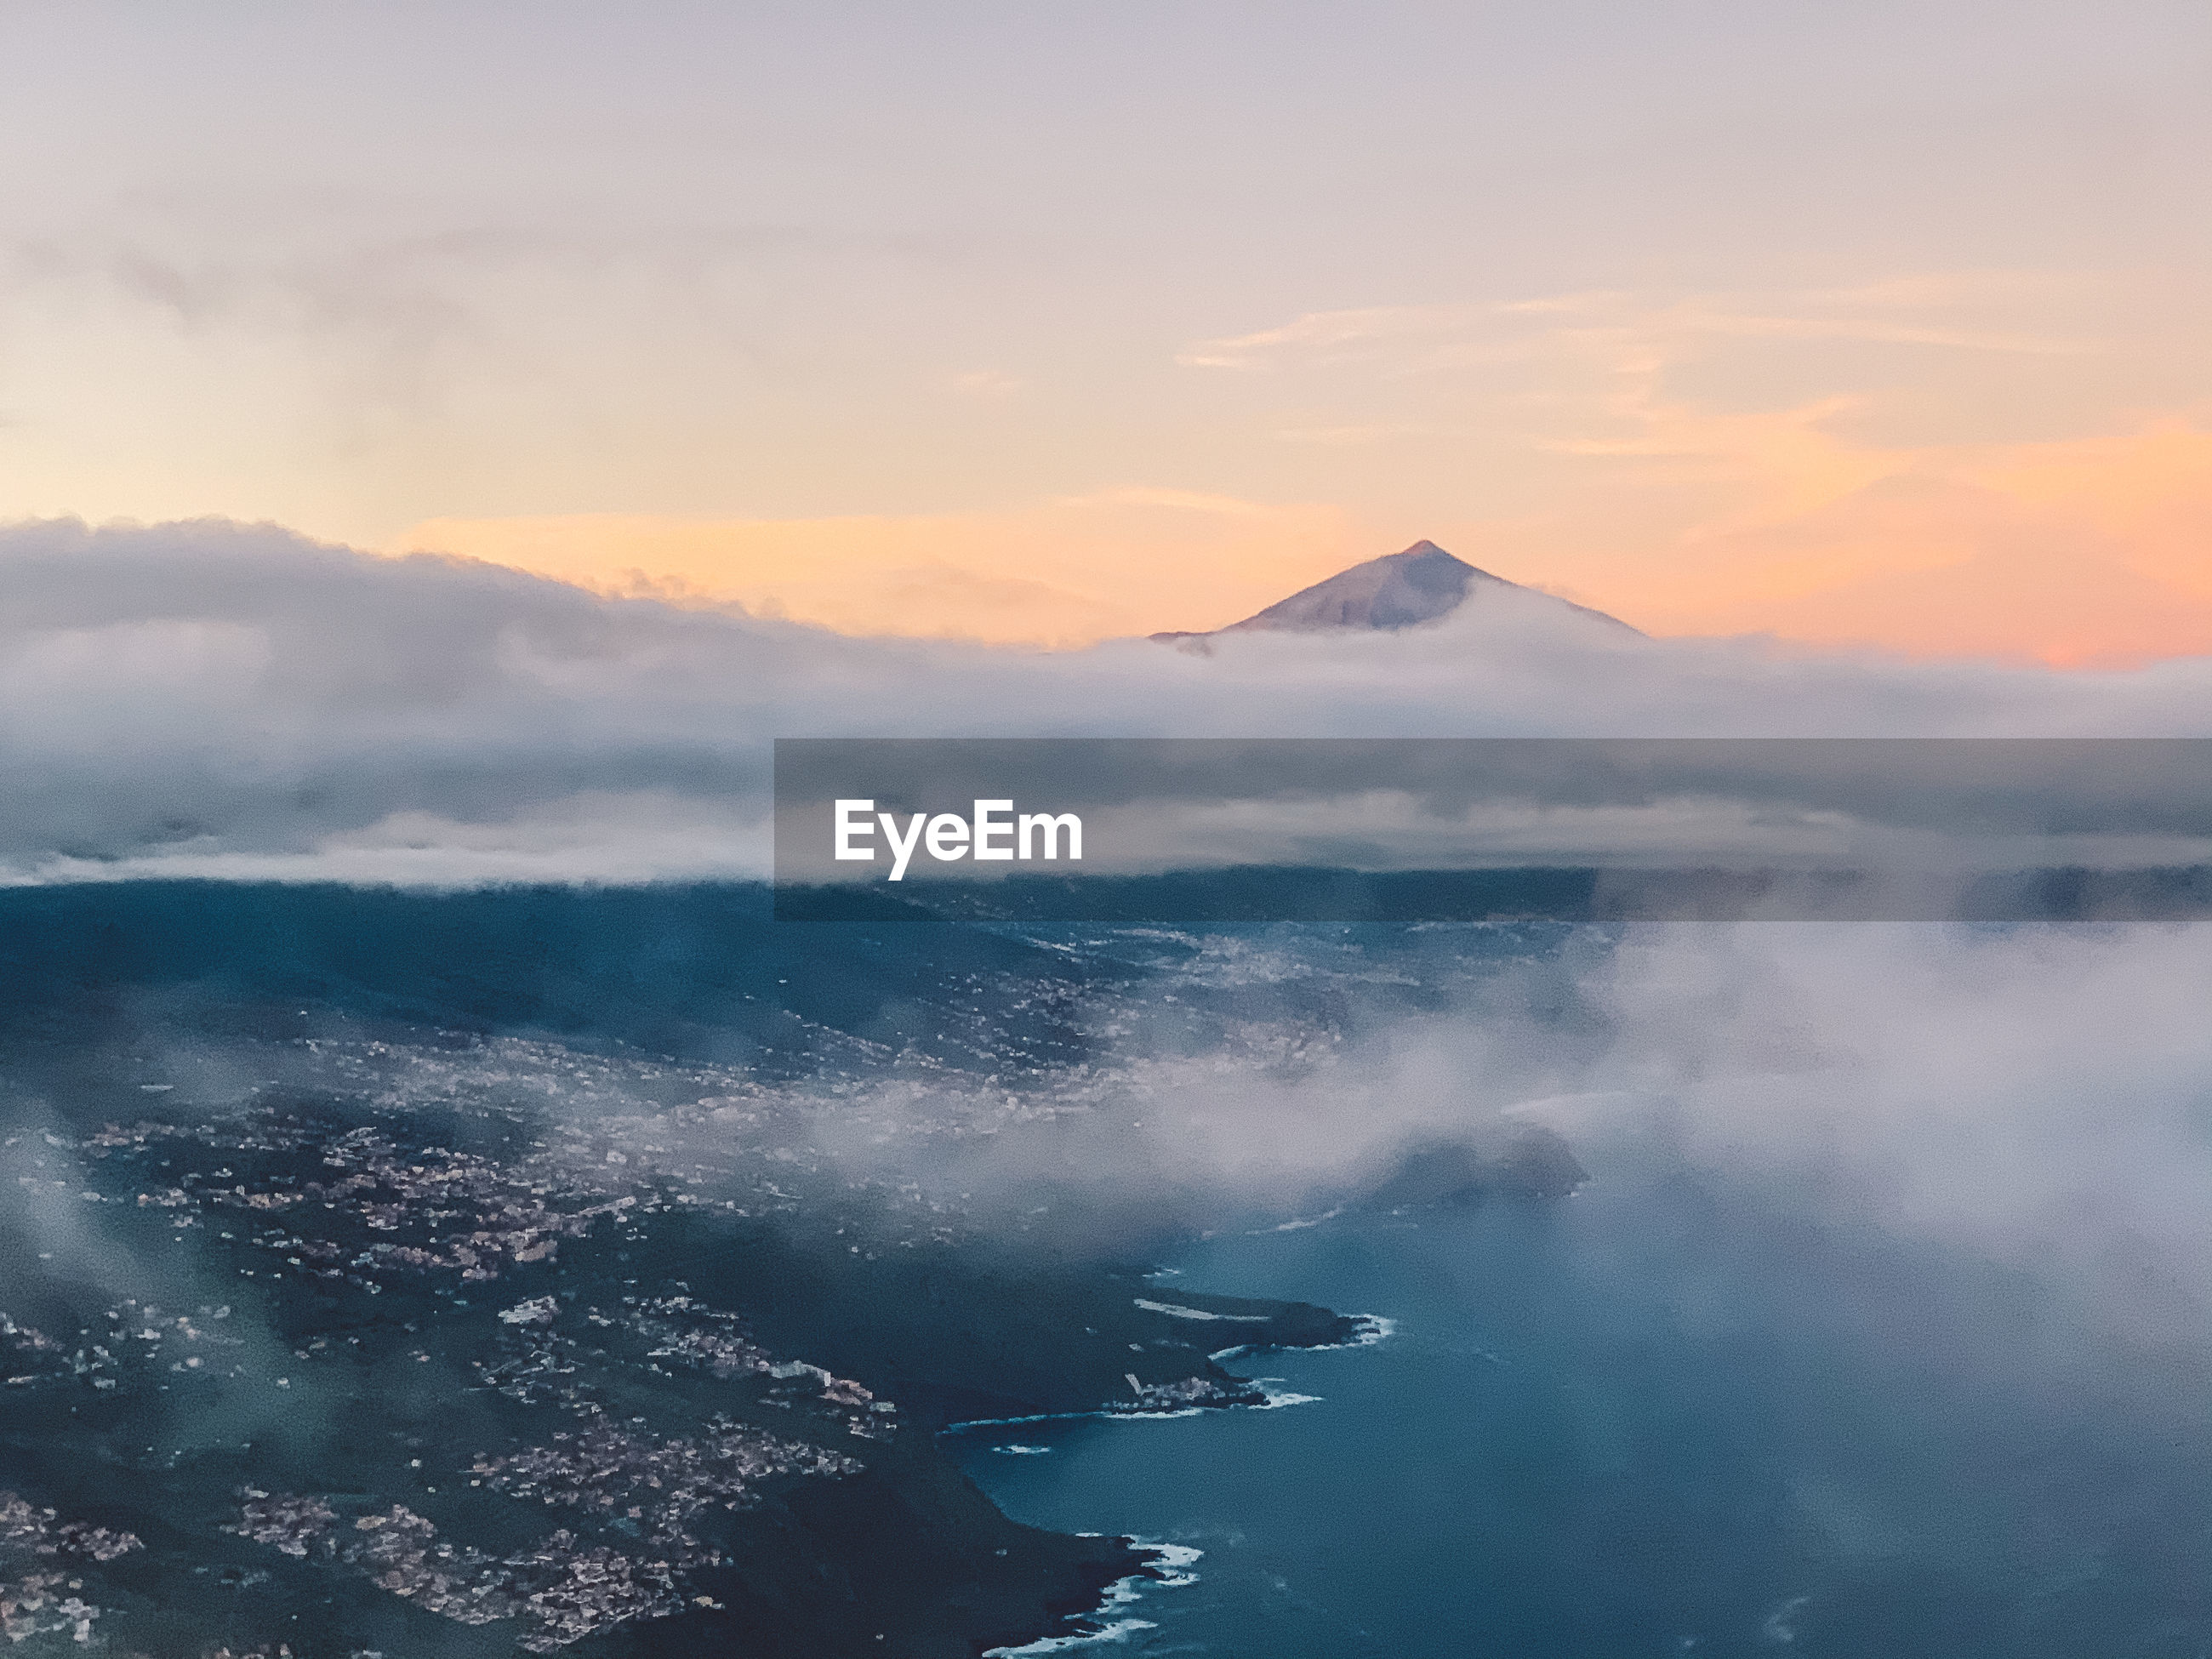 AERIAL VIEW OF SEA AND MOUNTAIN AGAINST SKY